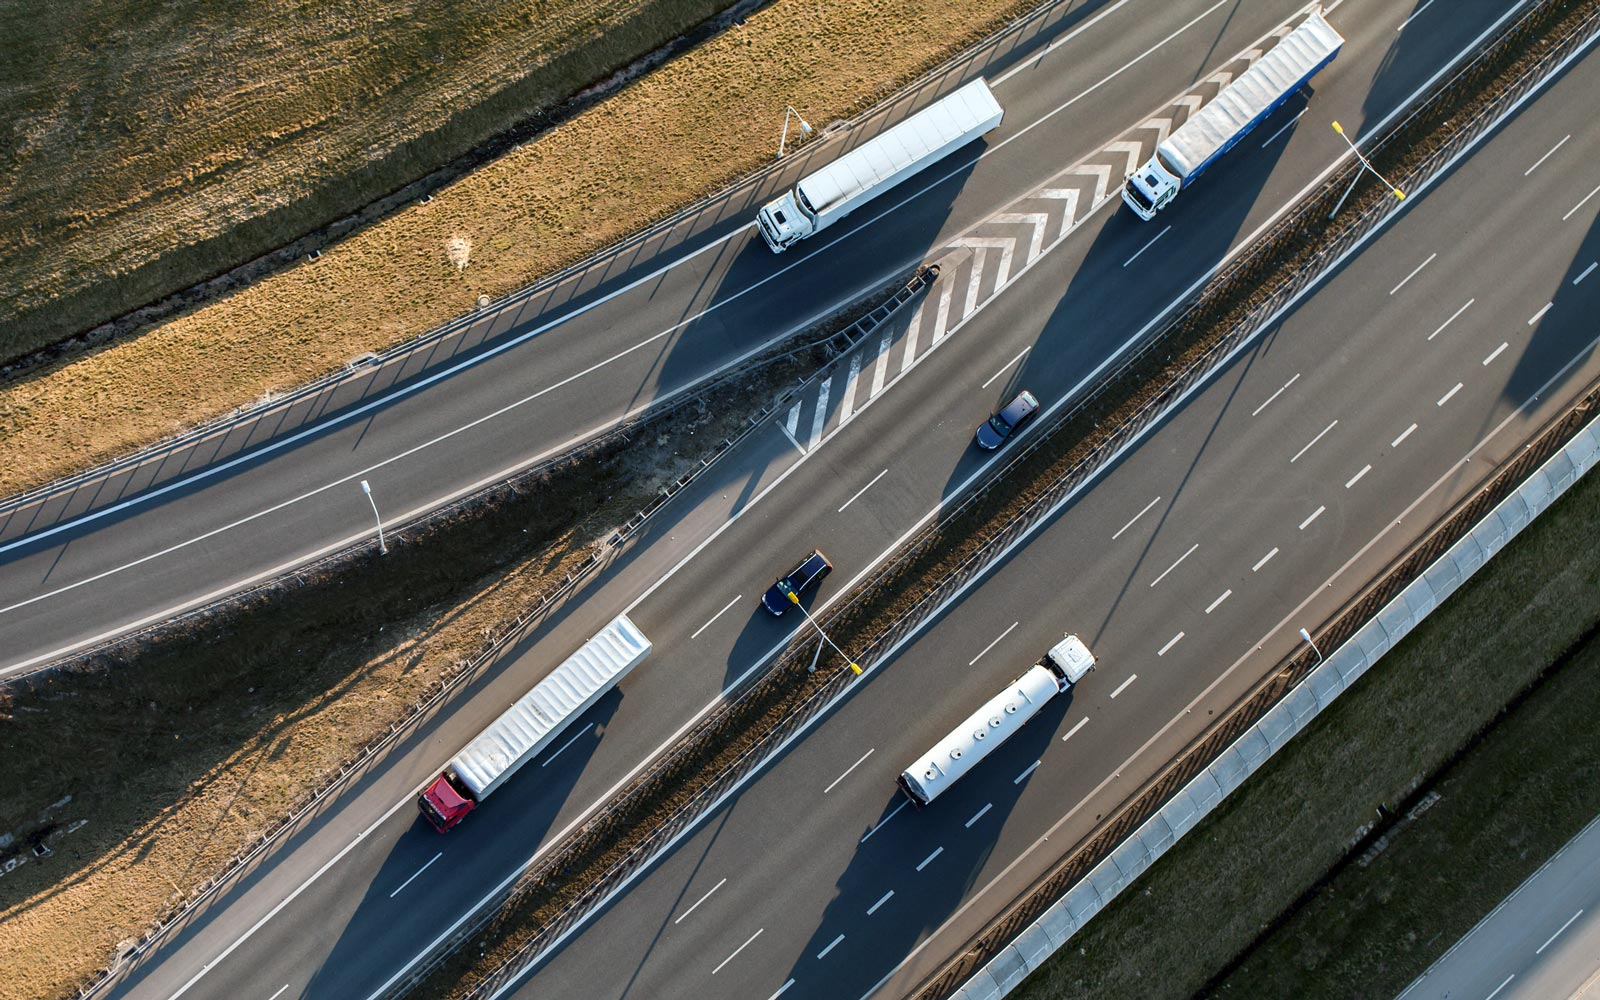 Aerial view of four freight trucks on a highway and off-ramp